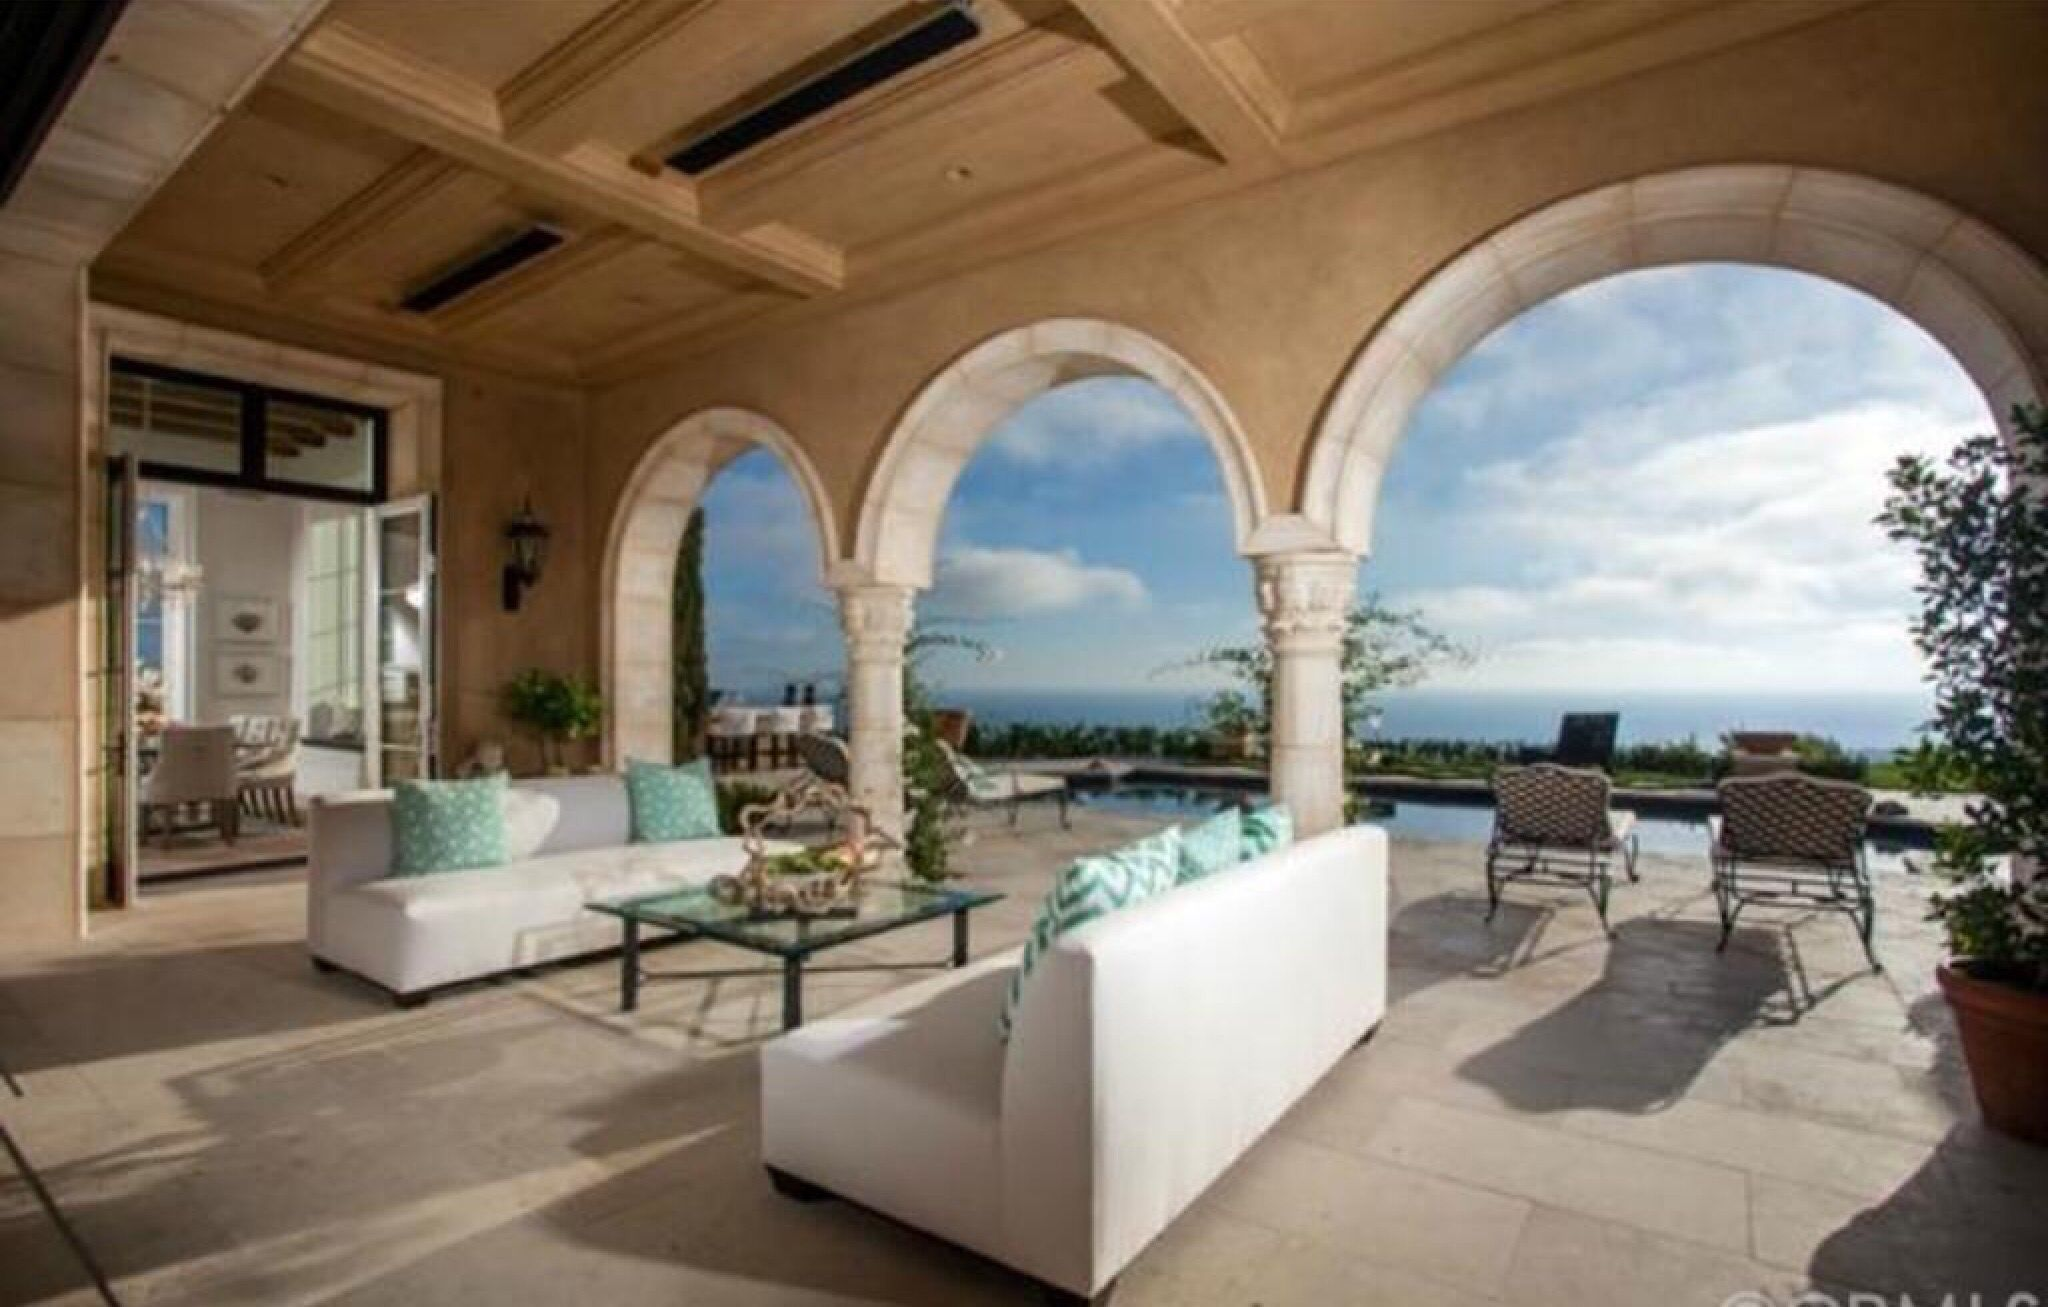 Arches for outdoor living, awe!